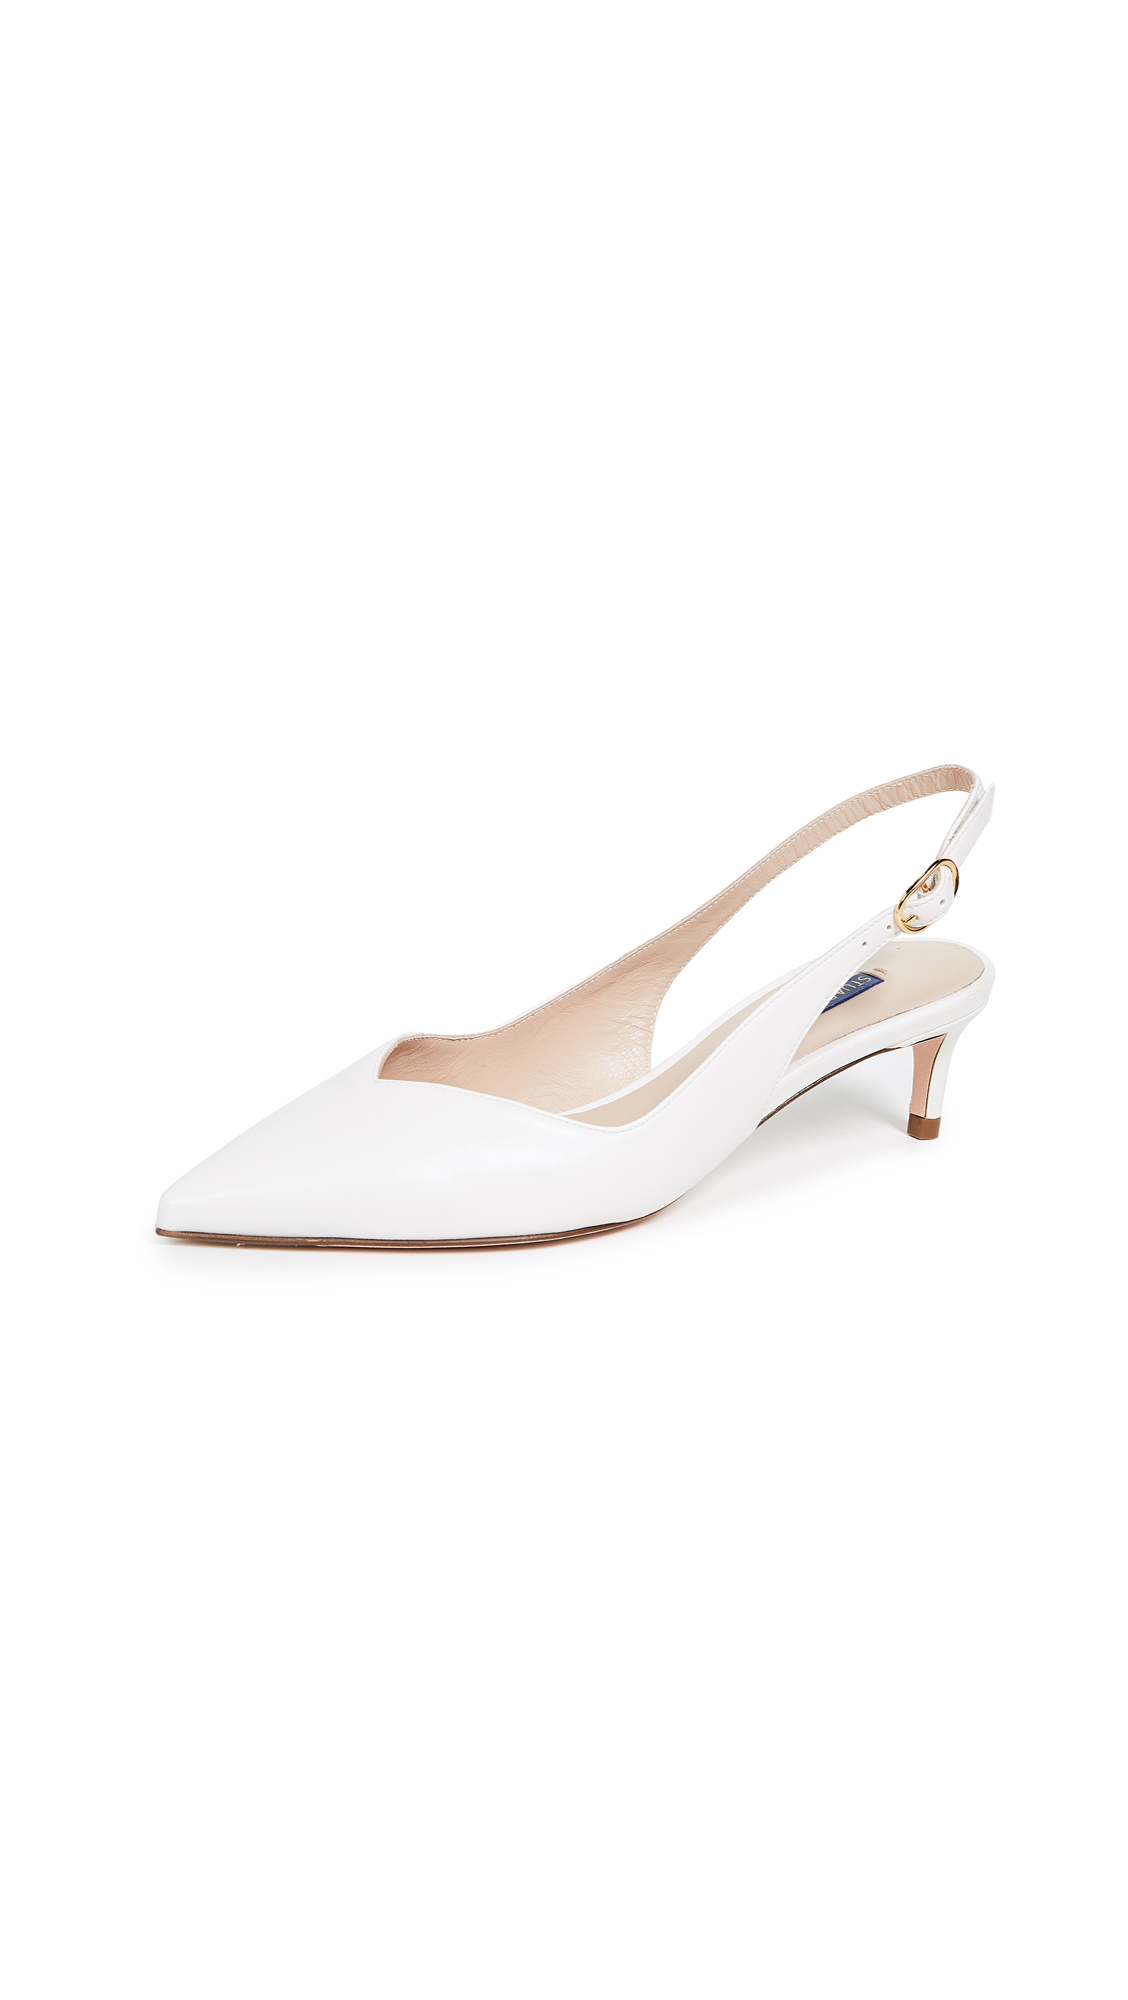 Stuart Weitzman Edith Slingback Pumps - Cream